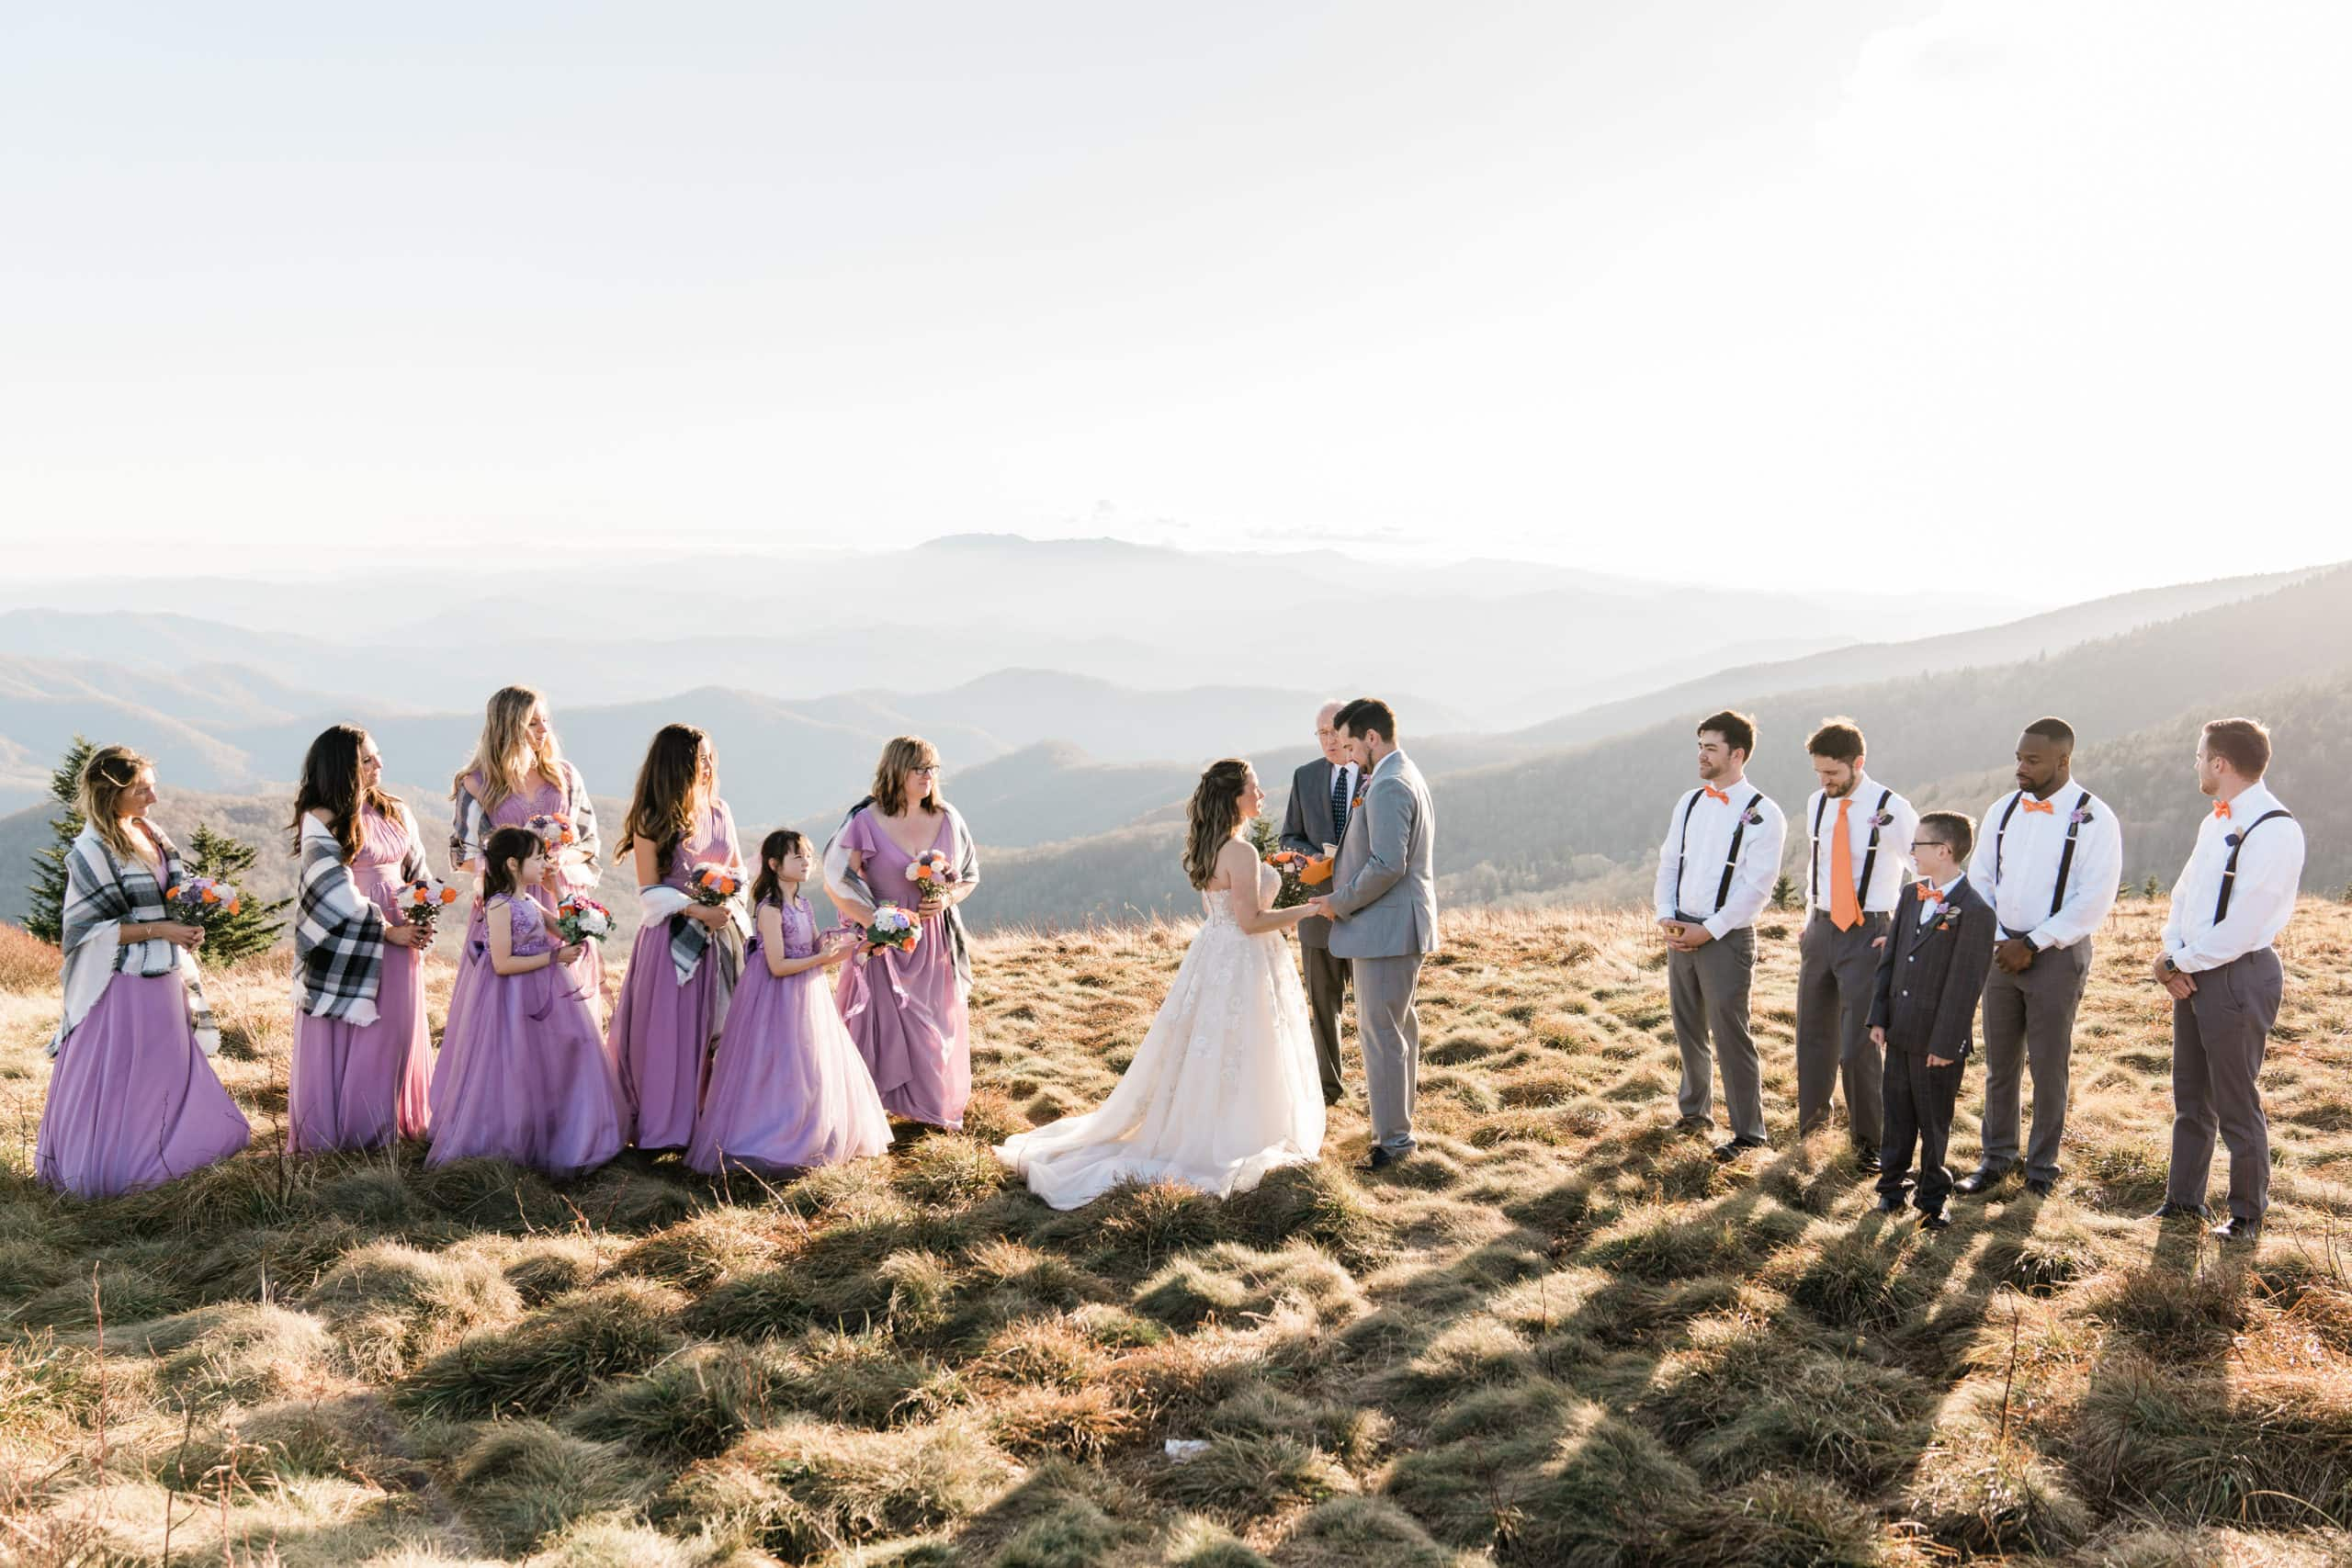 Elopement Wedding Ceremony with mountain views